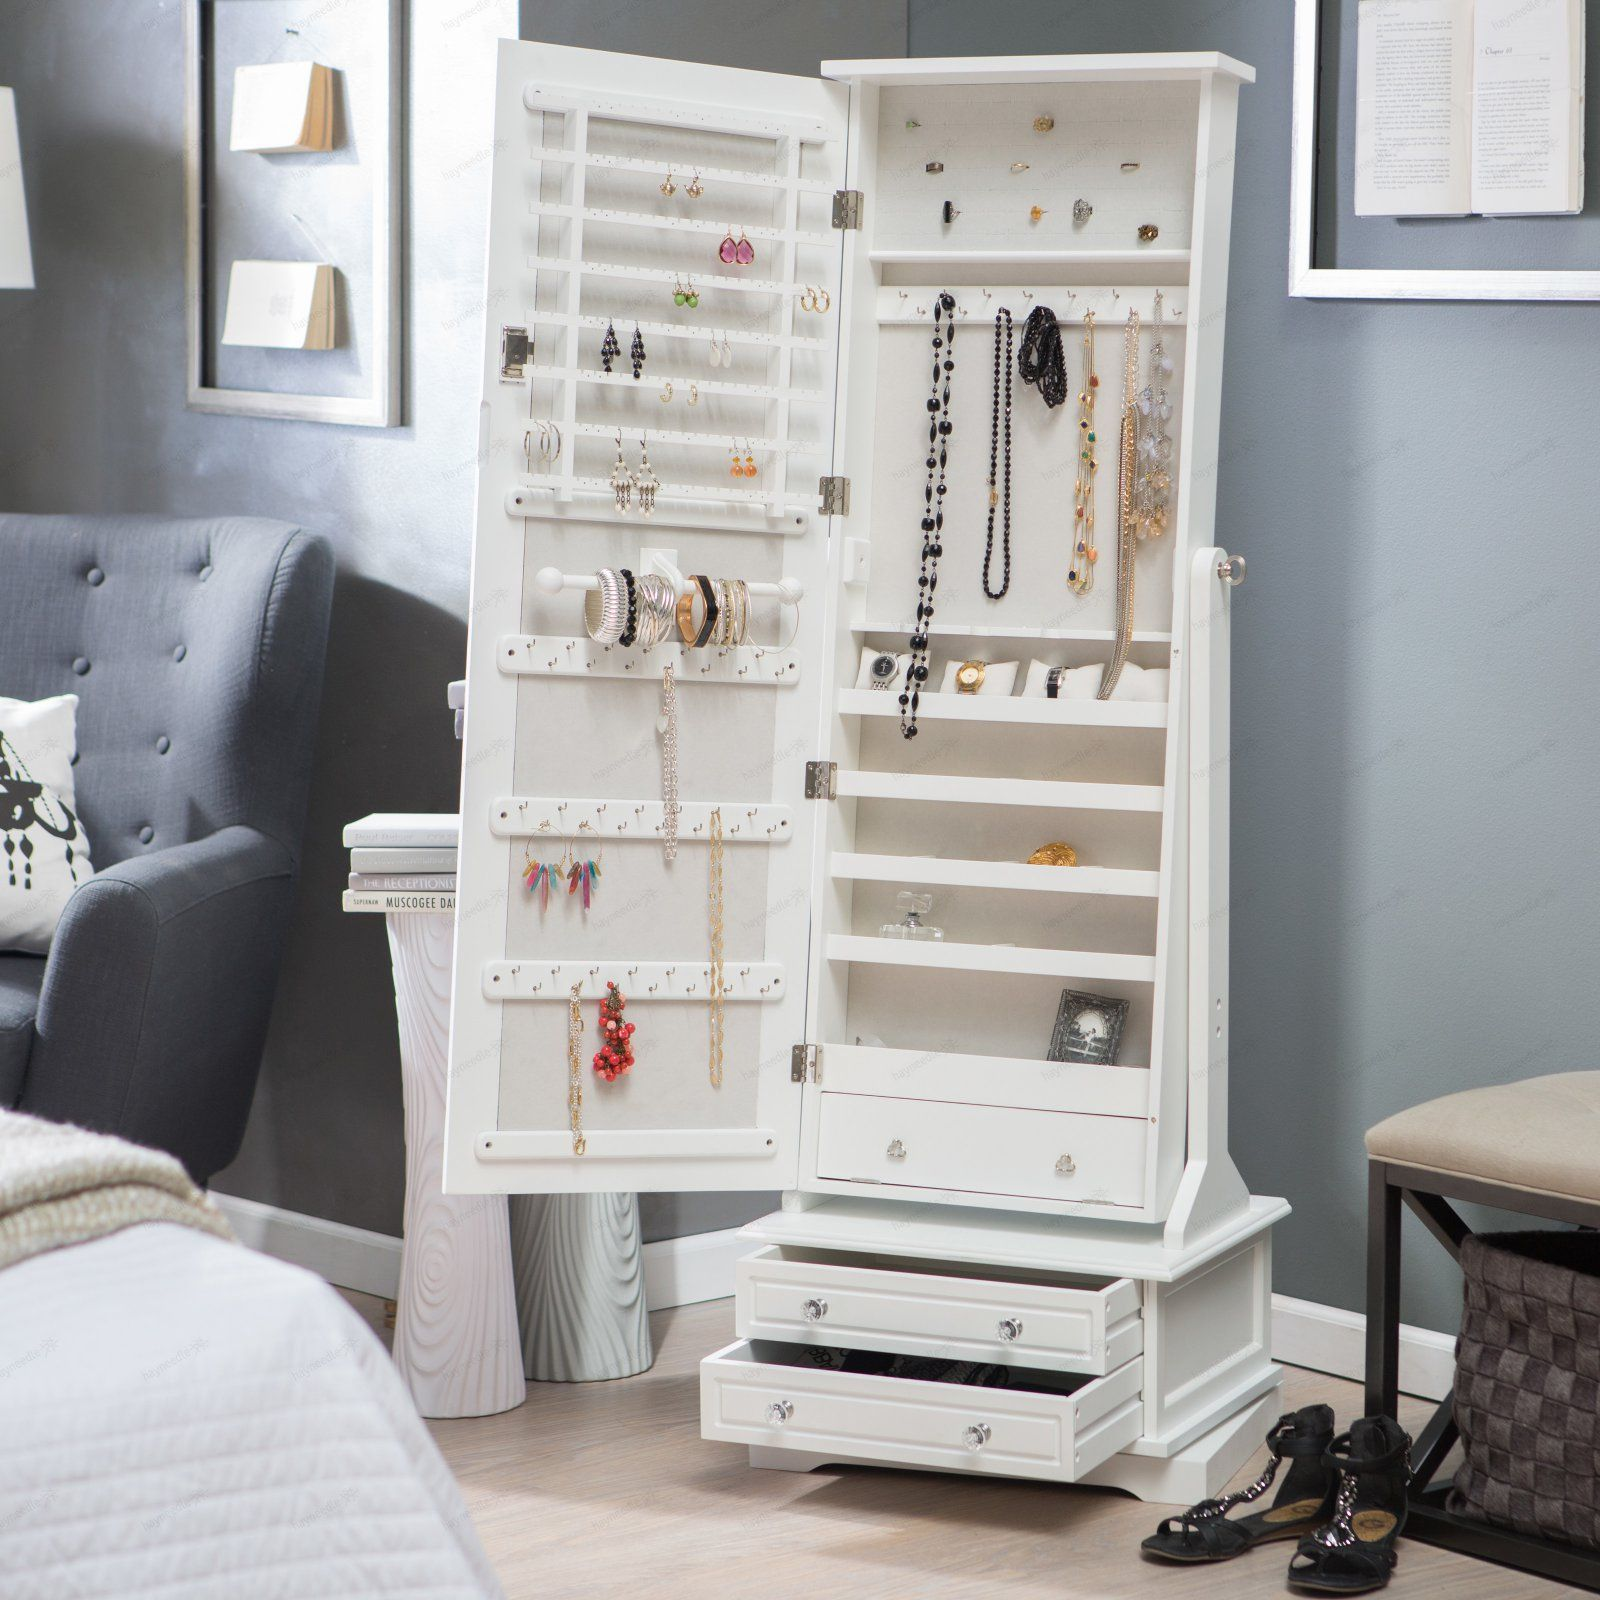 15+ Rooms to go jewelry armoire information